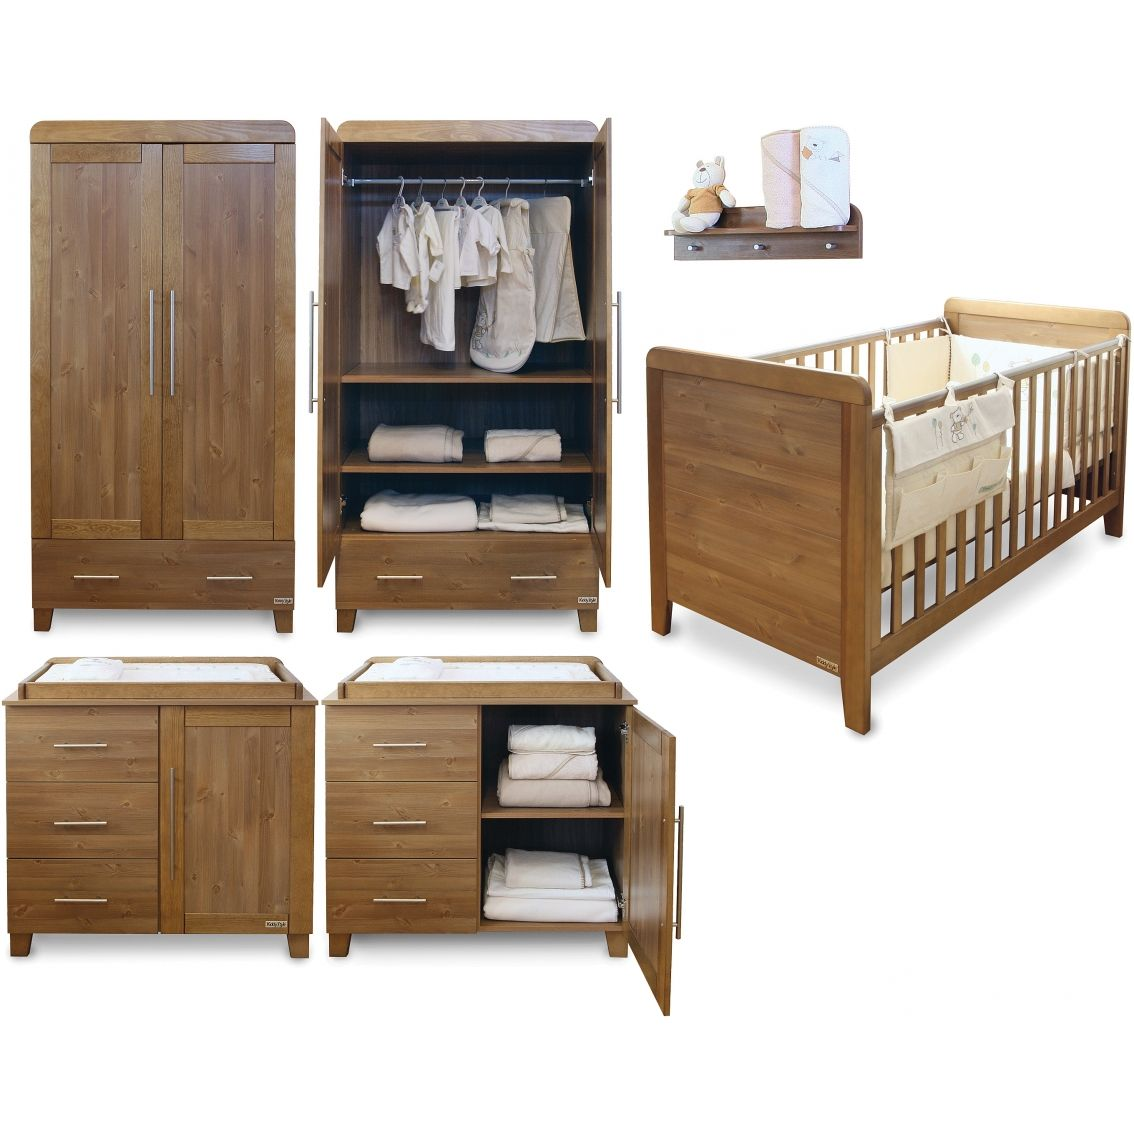 Modern Furniture Stores Calgary Nursery Furniture Collections Uk Interior Design Styles